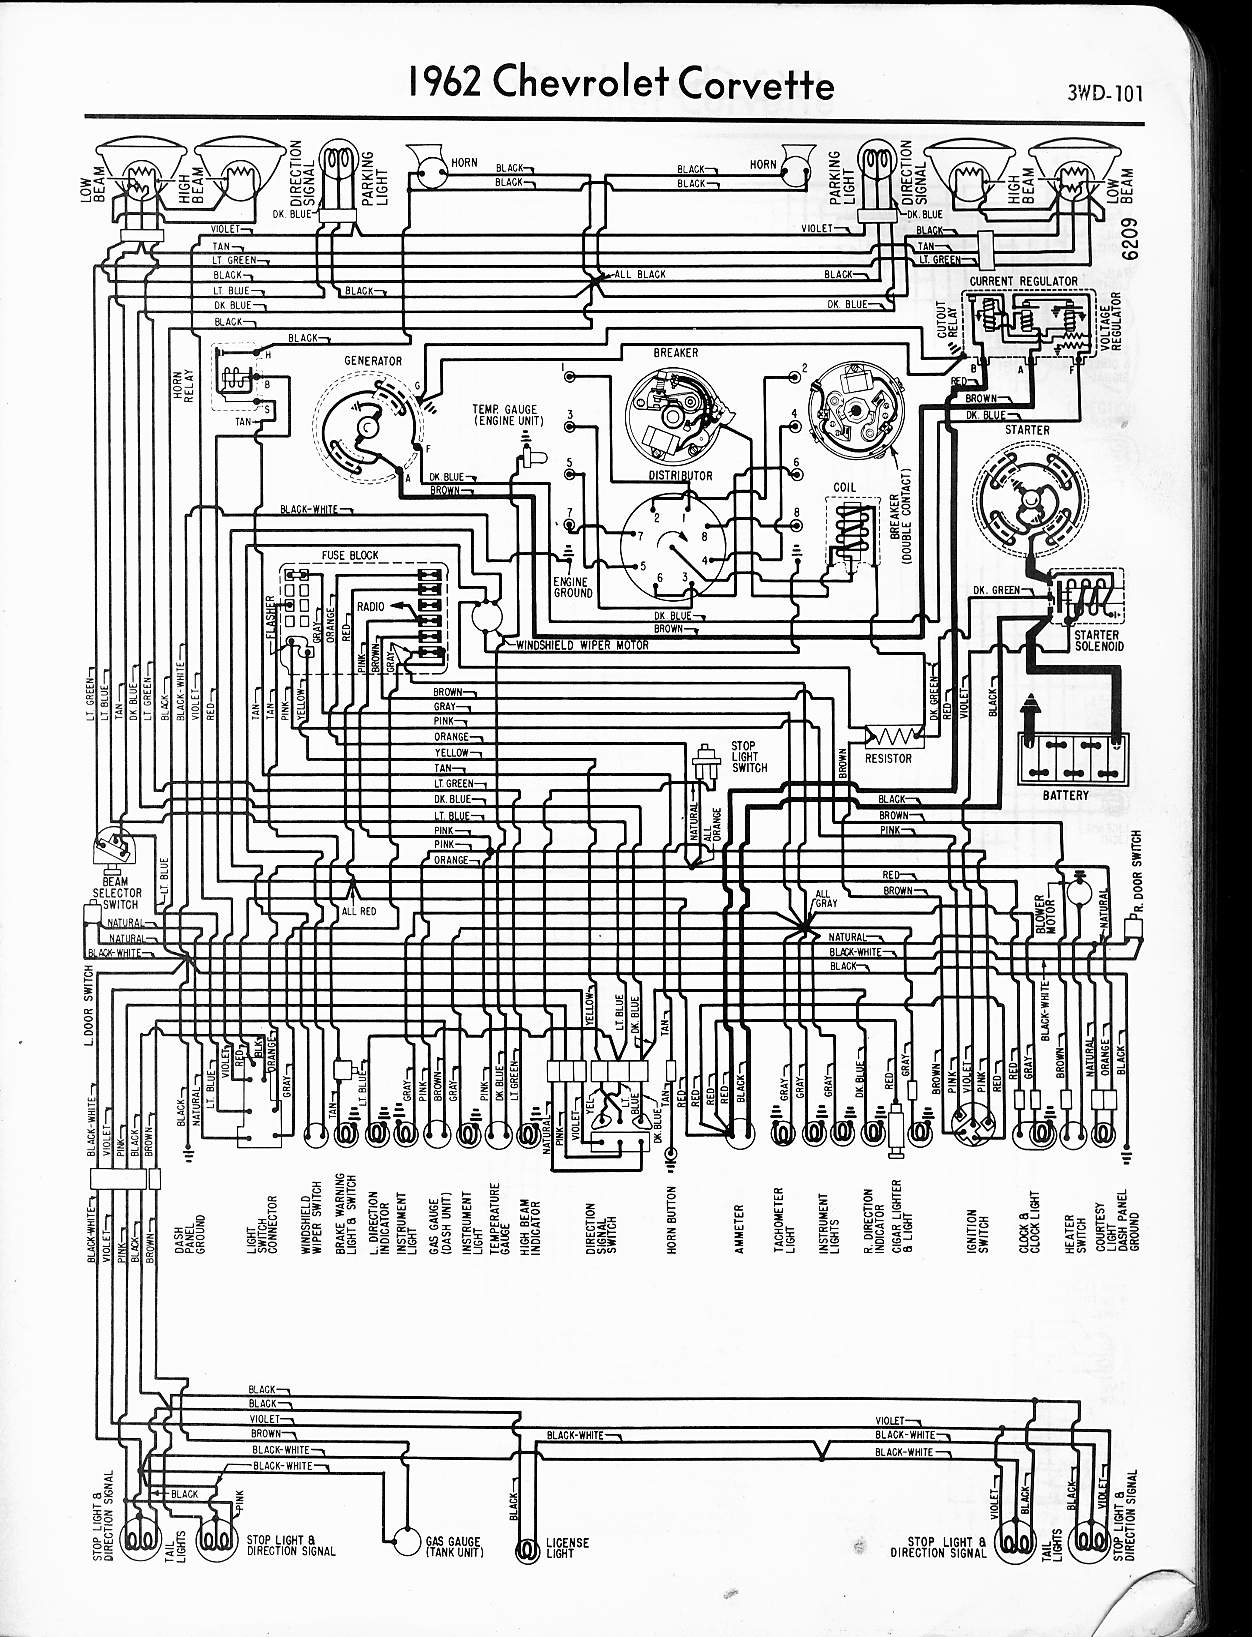 hight resolution of 63 impala ignition wiring diagram automotive wiring diagrams 1964 chevy c10 wiring diagram 61 chevy c10 wiring diagram